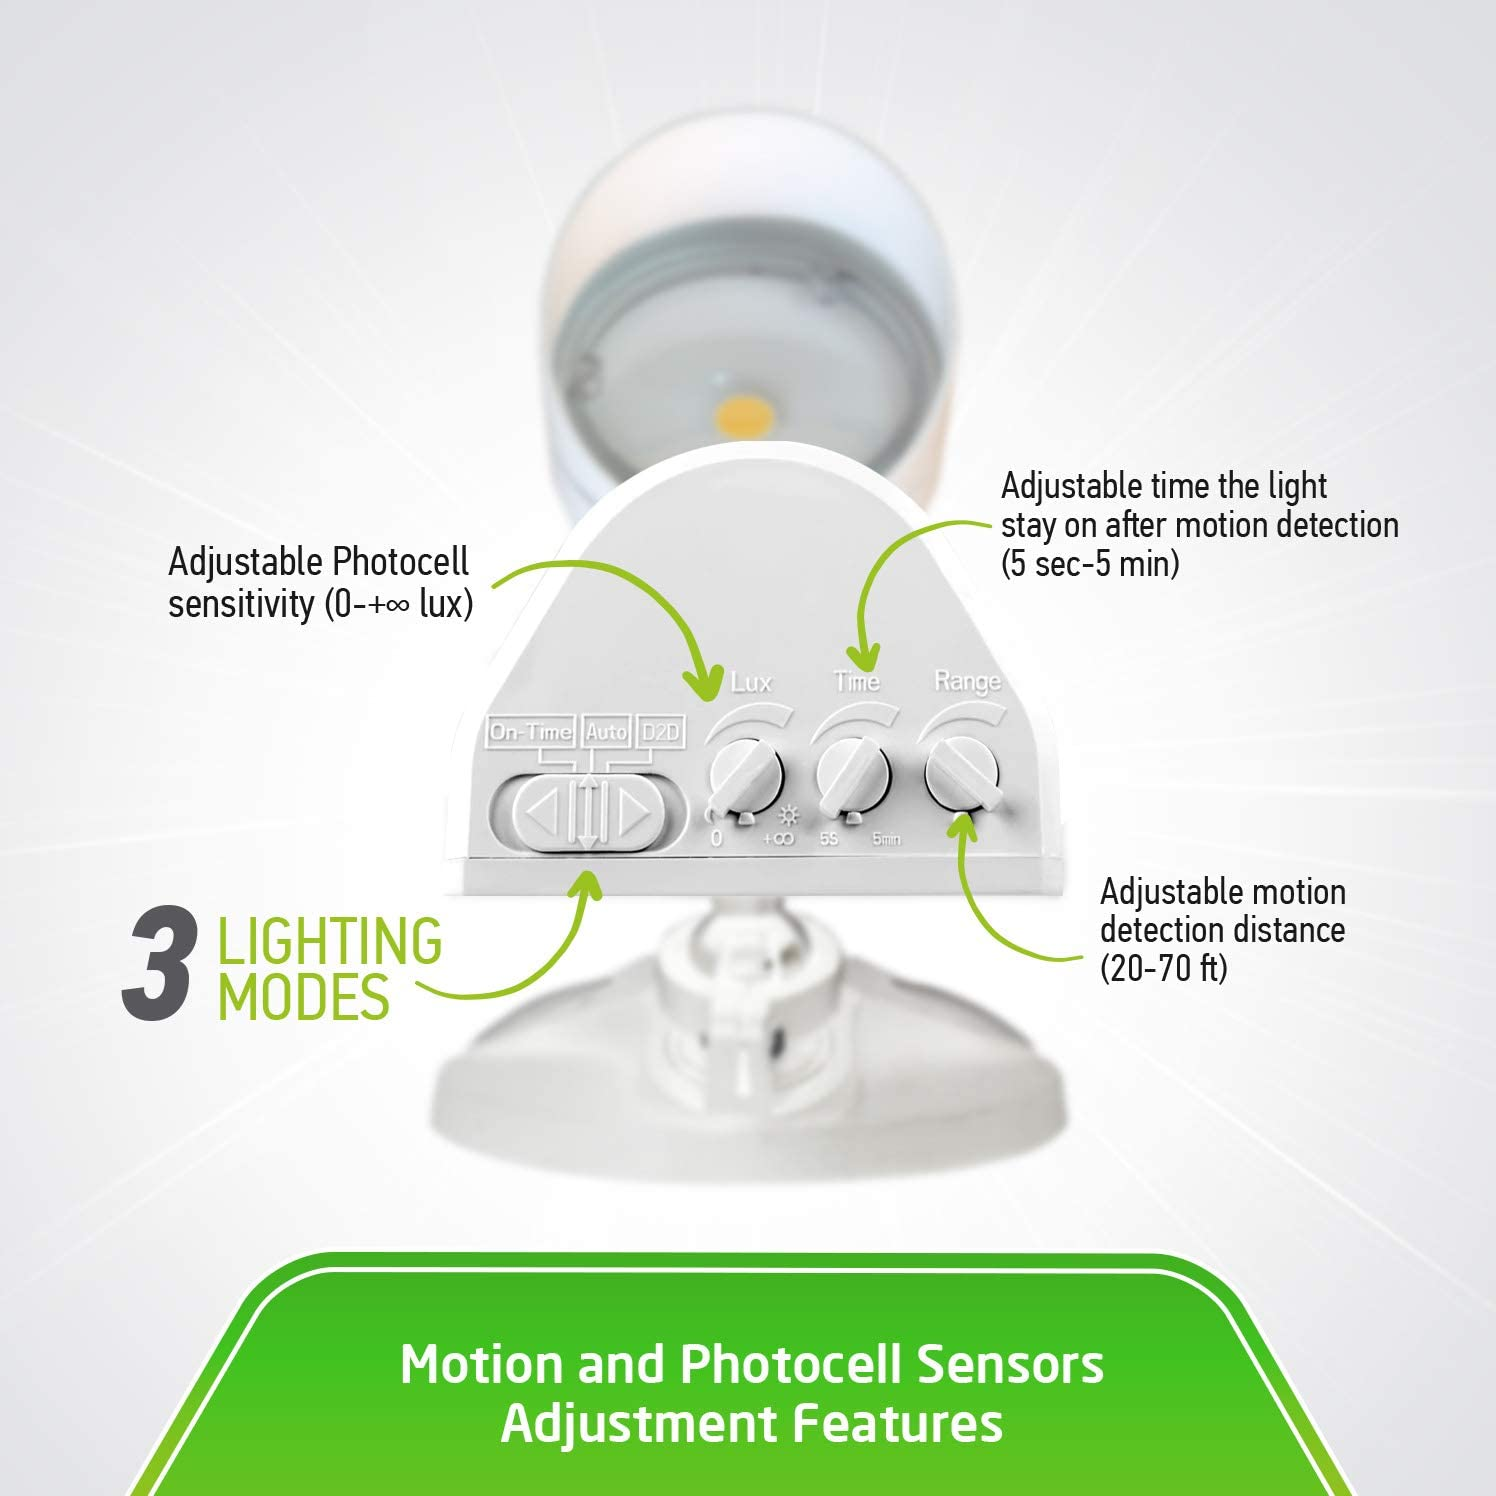 Commercial Grade Daylight White ASD LED Security Light 10W 1 Head with 150/° Motion and PC 5000K DLC Standard